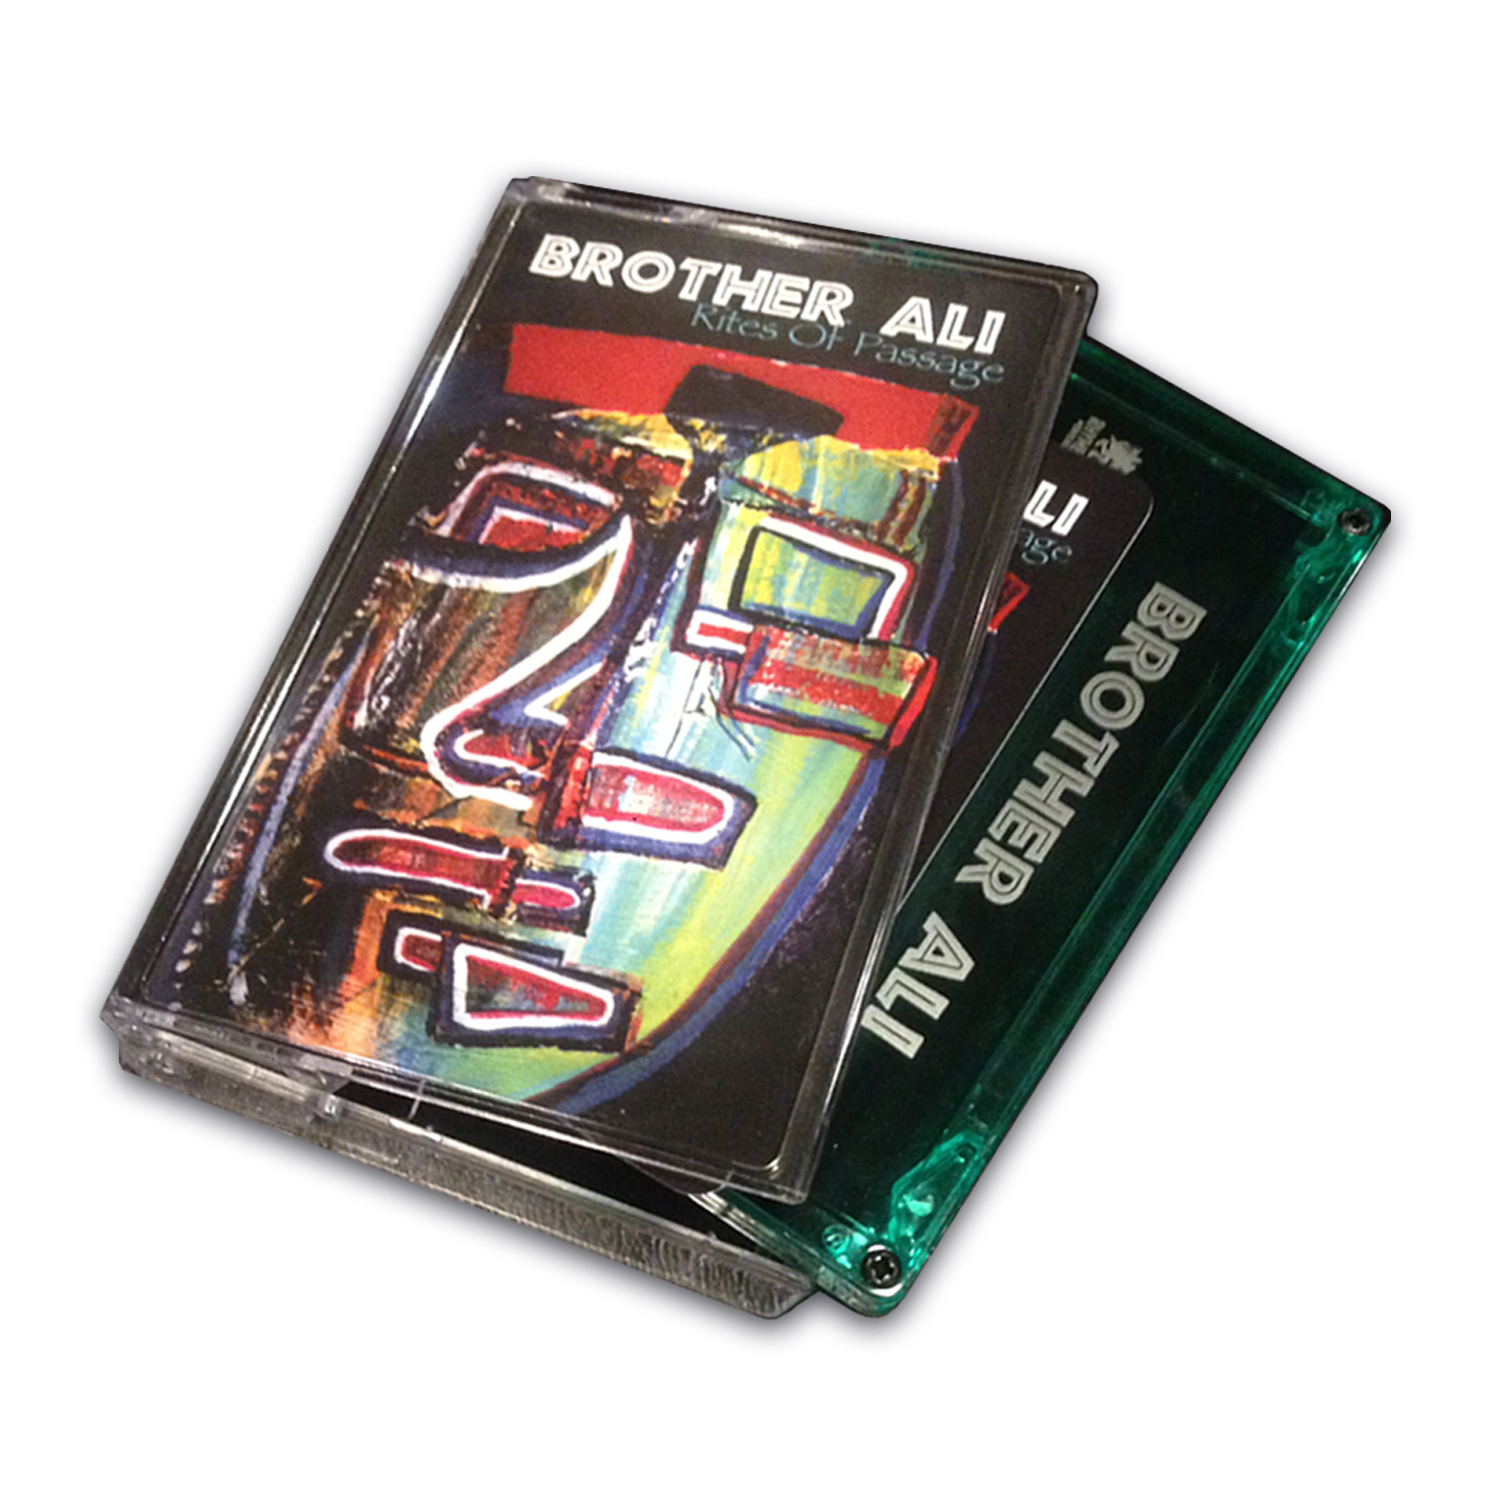 Brother Ali Rites Cassette